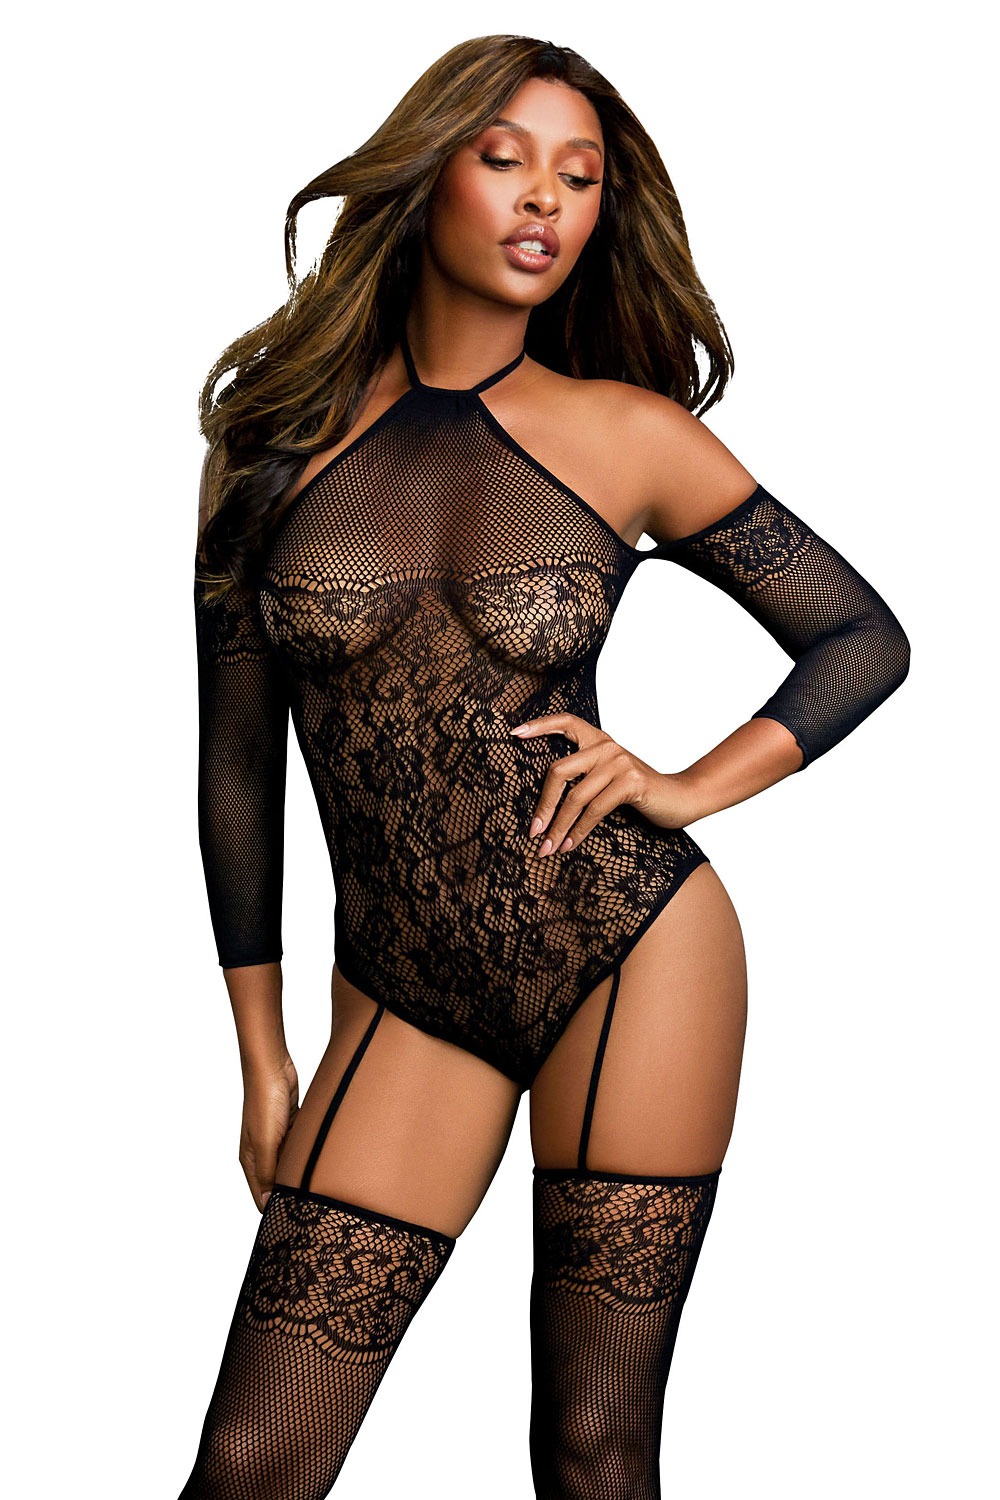 DR0310 Bodystocking – Black Diamond Style schwarz von Dreamgirl – 4053015433291